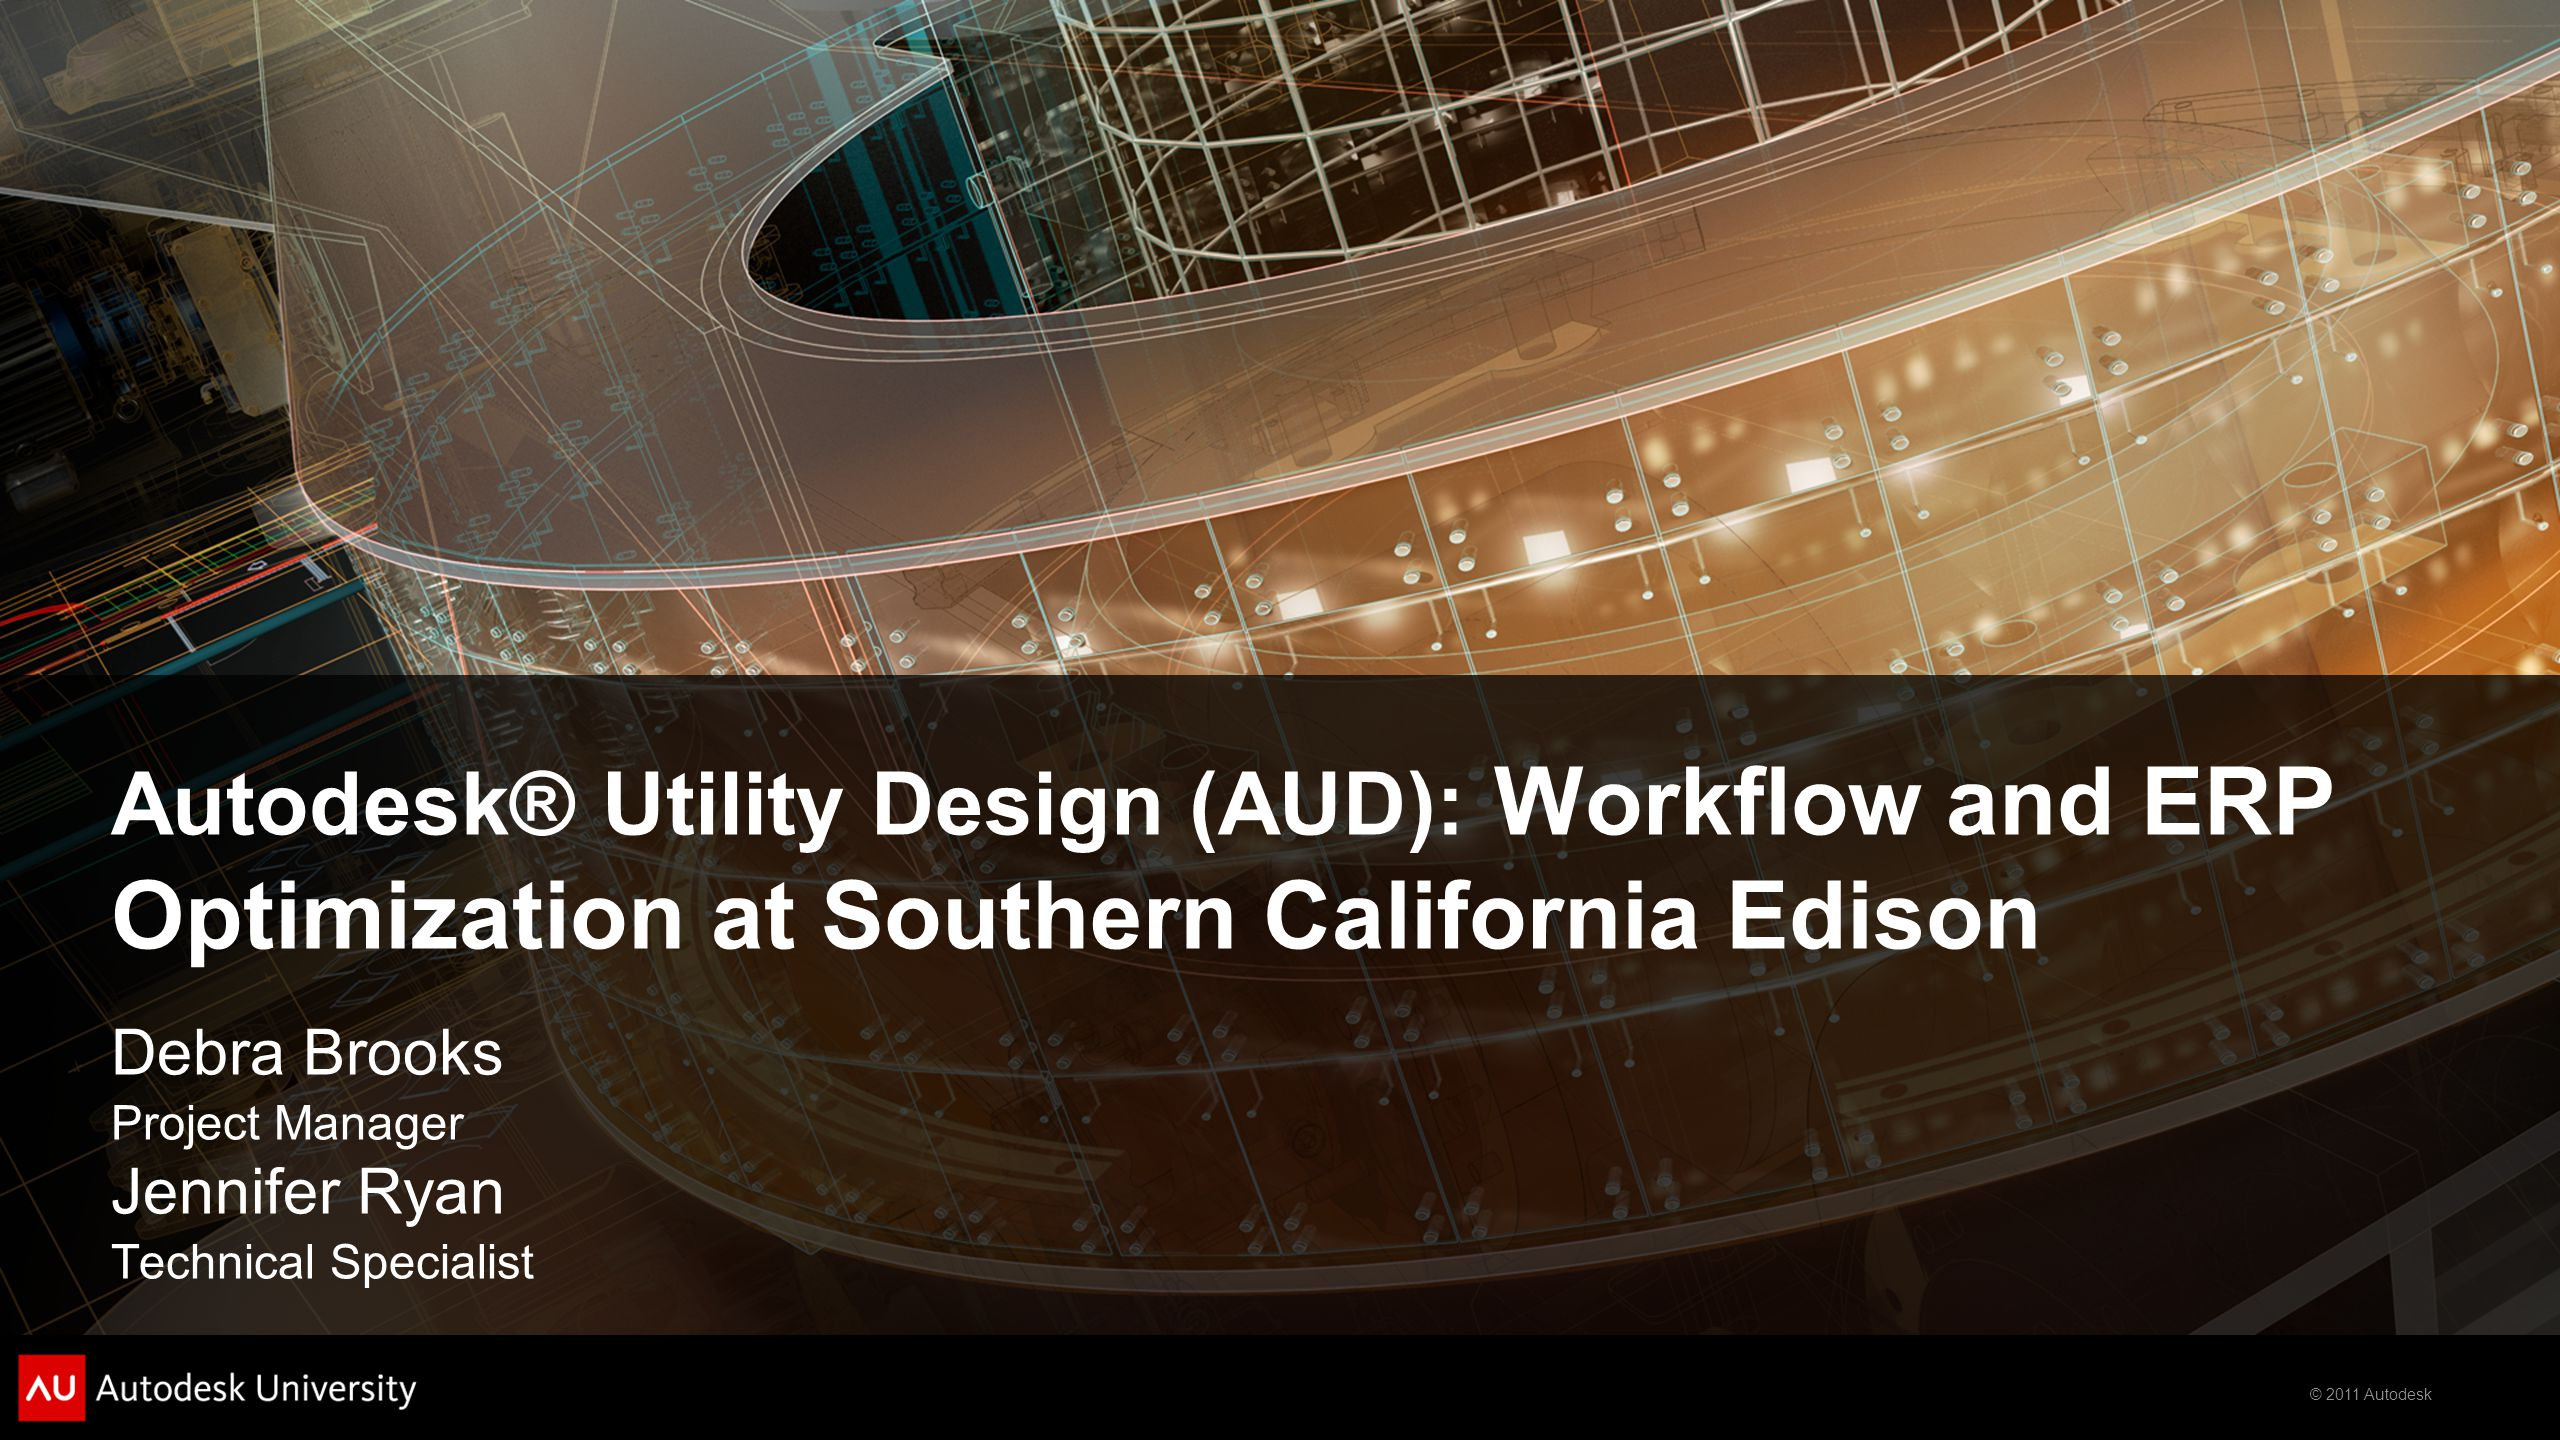 © 2011 Autodesk Architecture: Major Interfaces DM ClickSoft OMS (Outage Management System) eMobile (Field Tools) CSS (Customer Service System) Scheduling Optimization, Forecasting & Planning Outage Management Mobile Solution Customer Service GESW Circuit Mapping Fixed Asset Accounting POWER PLANT (Finance) AUD Bolt-On Systems NCMM (Telecomm) NetComm Radio Equipment SCE Design Manager Graphical Design Work Mgmt Supplier, Services Mgmt Finance Project Systems Reporting BI Materials Mgmt Payroll / HR Portal SAP Functionality @ SCE Total of 16 Different (non-SAP) Systems